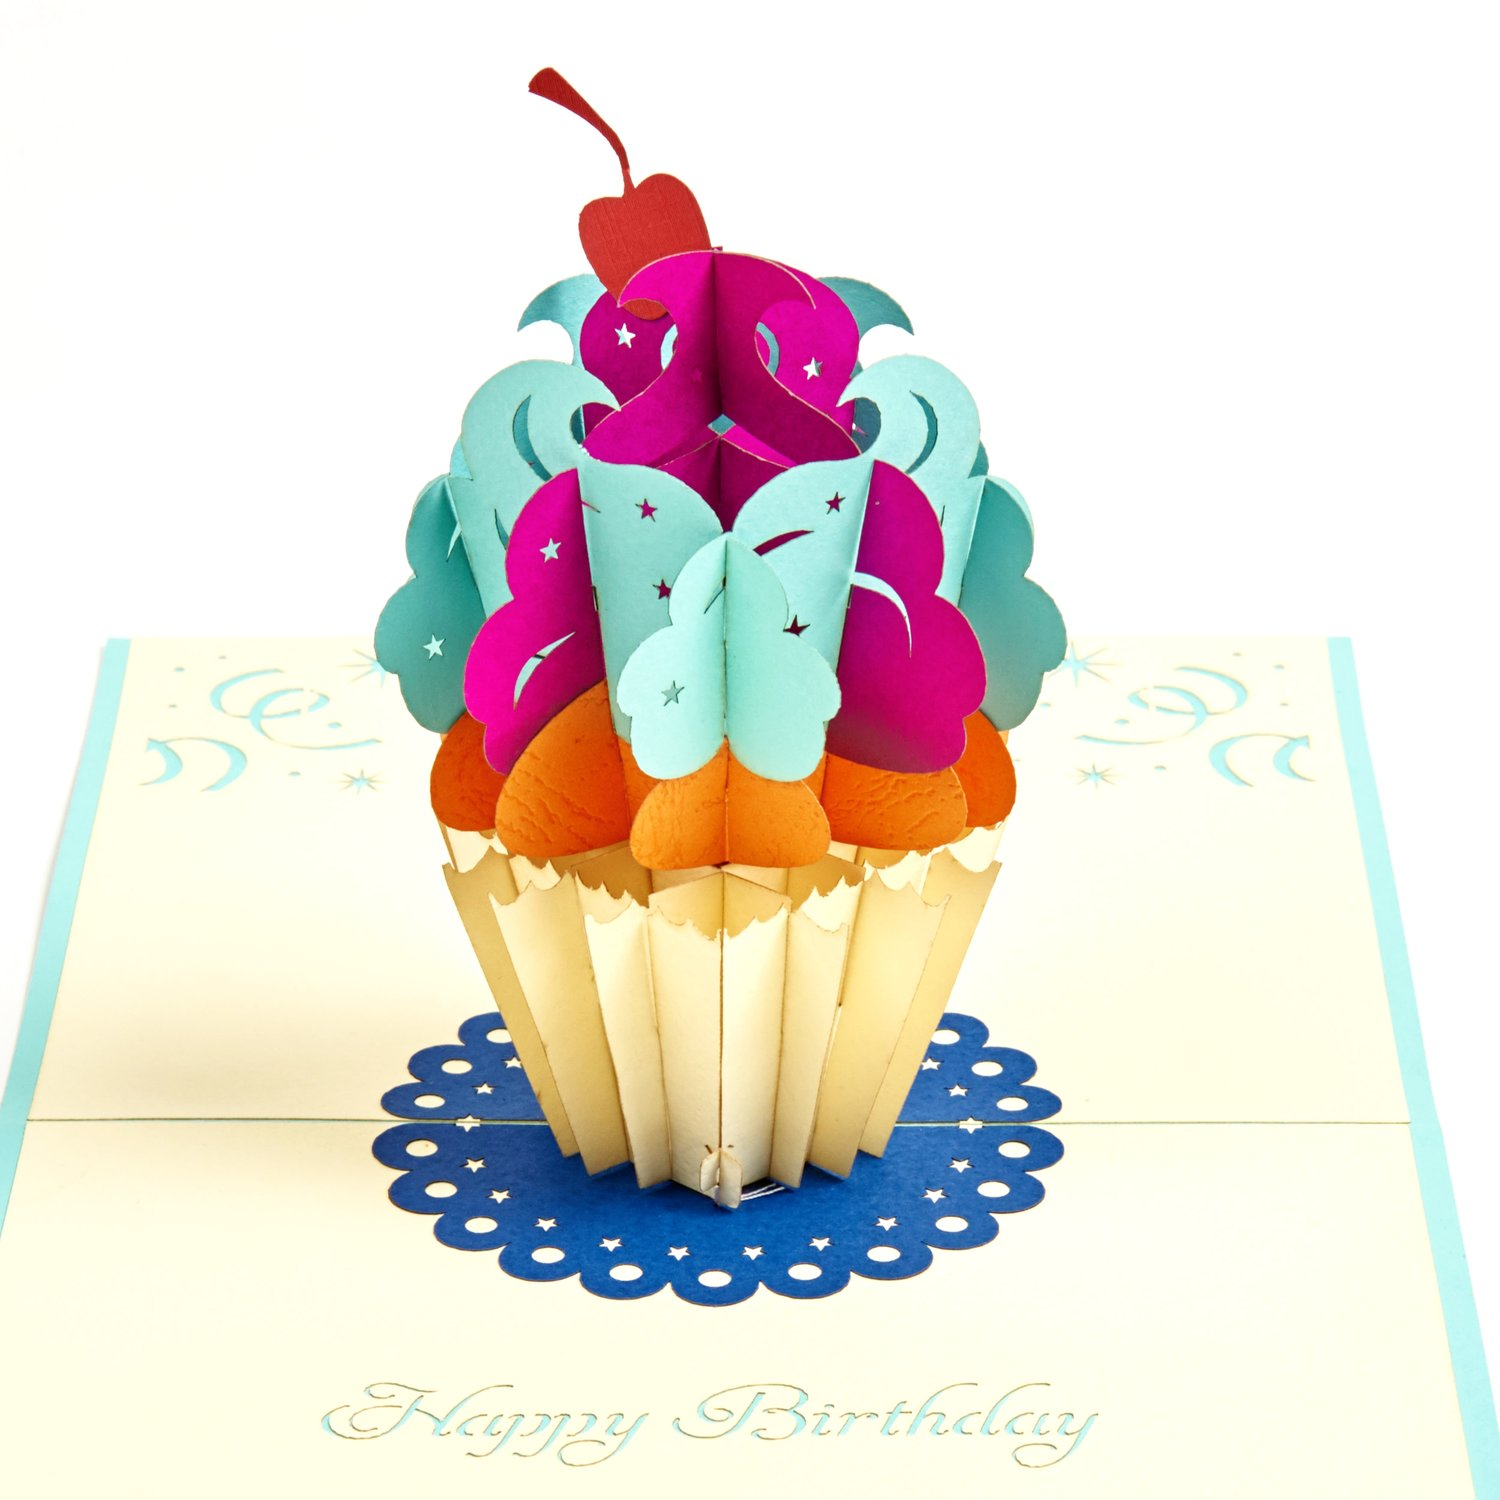 Happy Birthday Cup Cake Pop Up Card